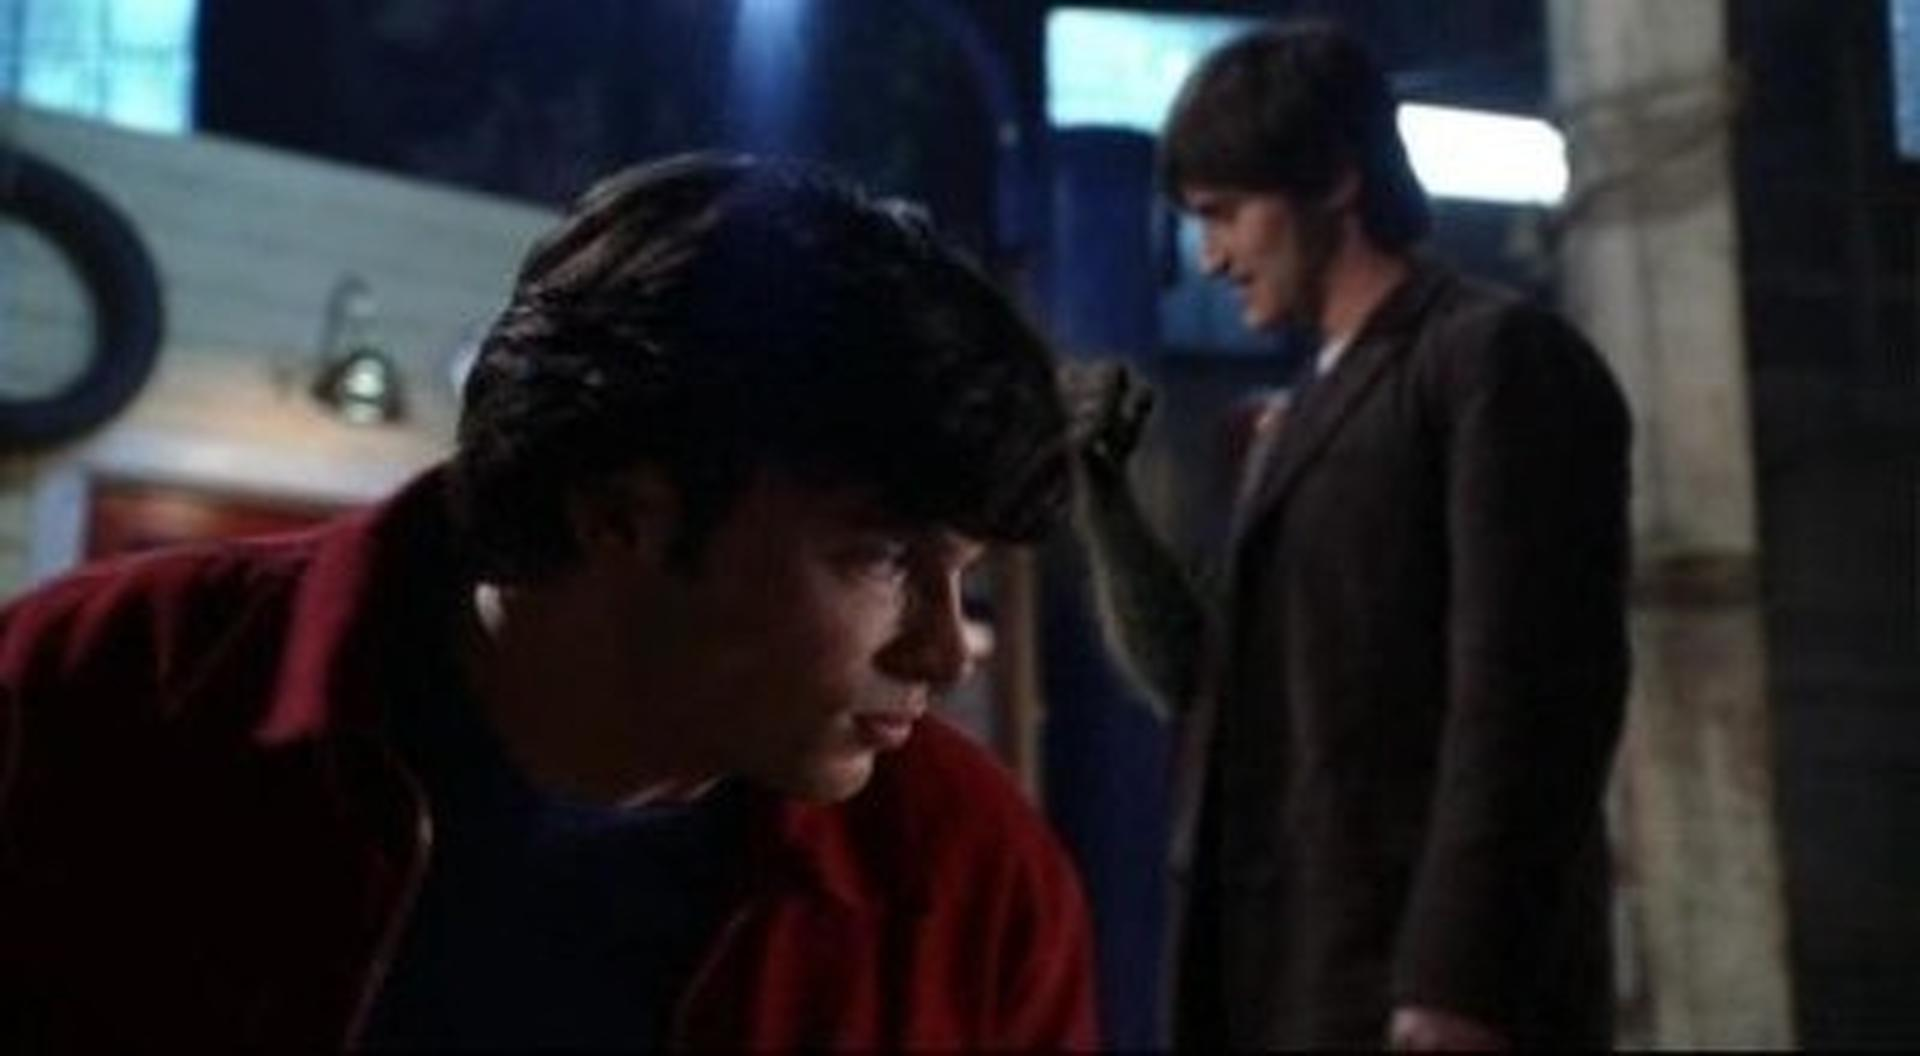 smallville season 7 episode 19 ishared